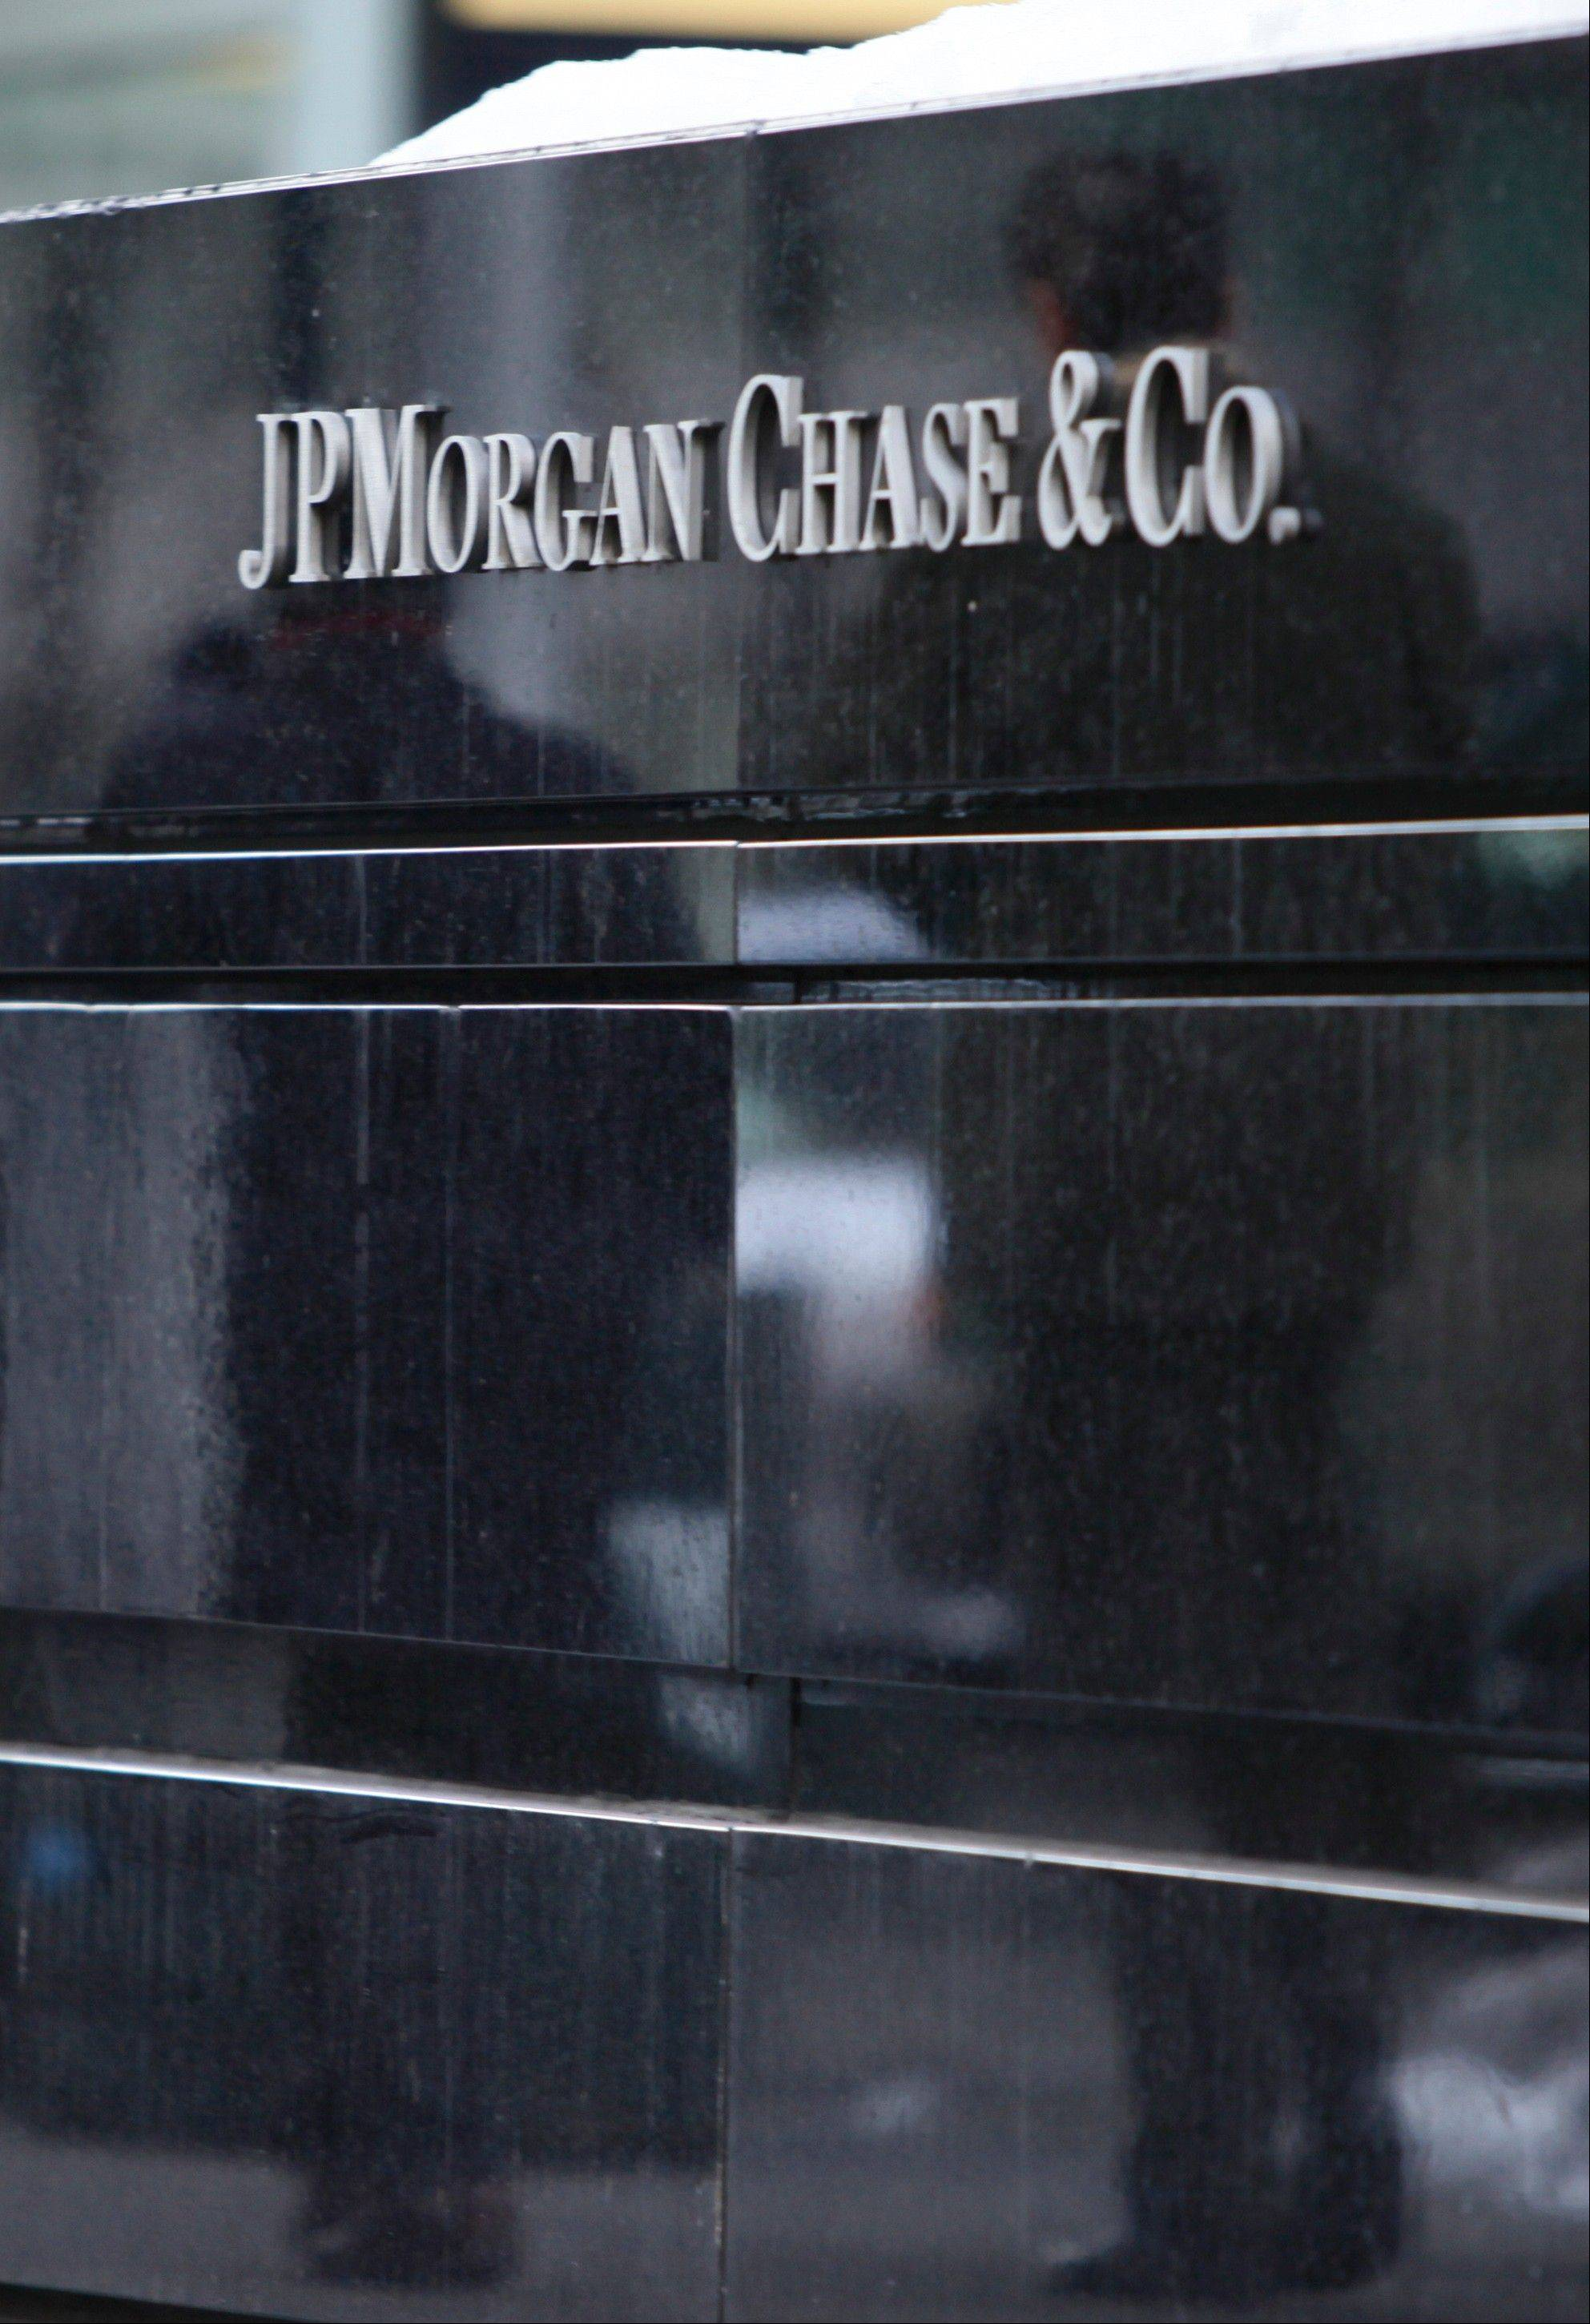 JPMorgan Chase has agreed to a deal that will return $546 million to former customers of trading firm MF Global Holdings Ltd., which collapsed in 2011 with $1.6 billion missing from its accounts.